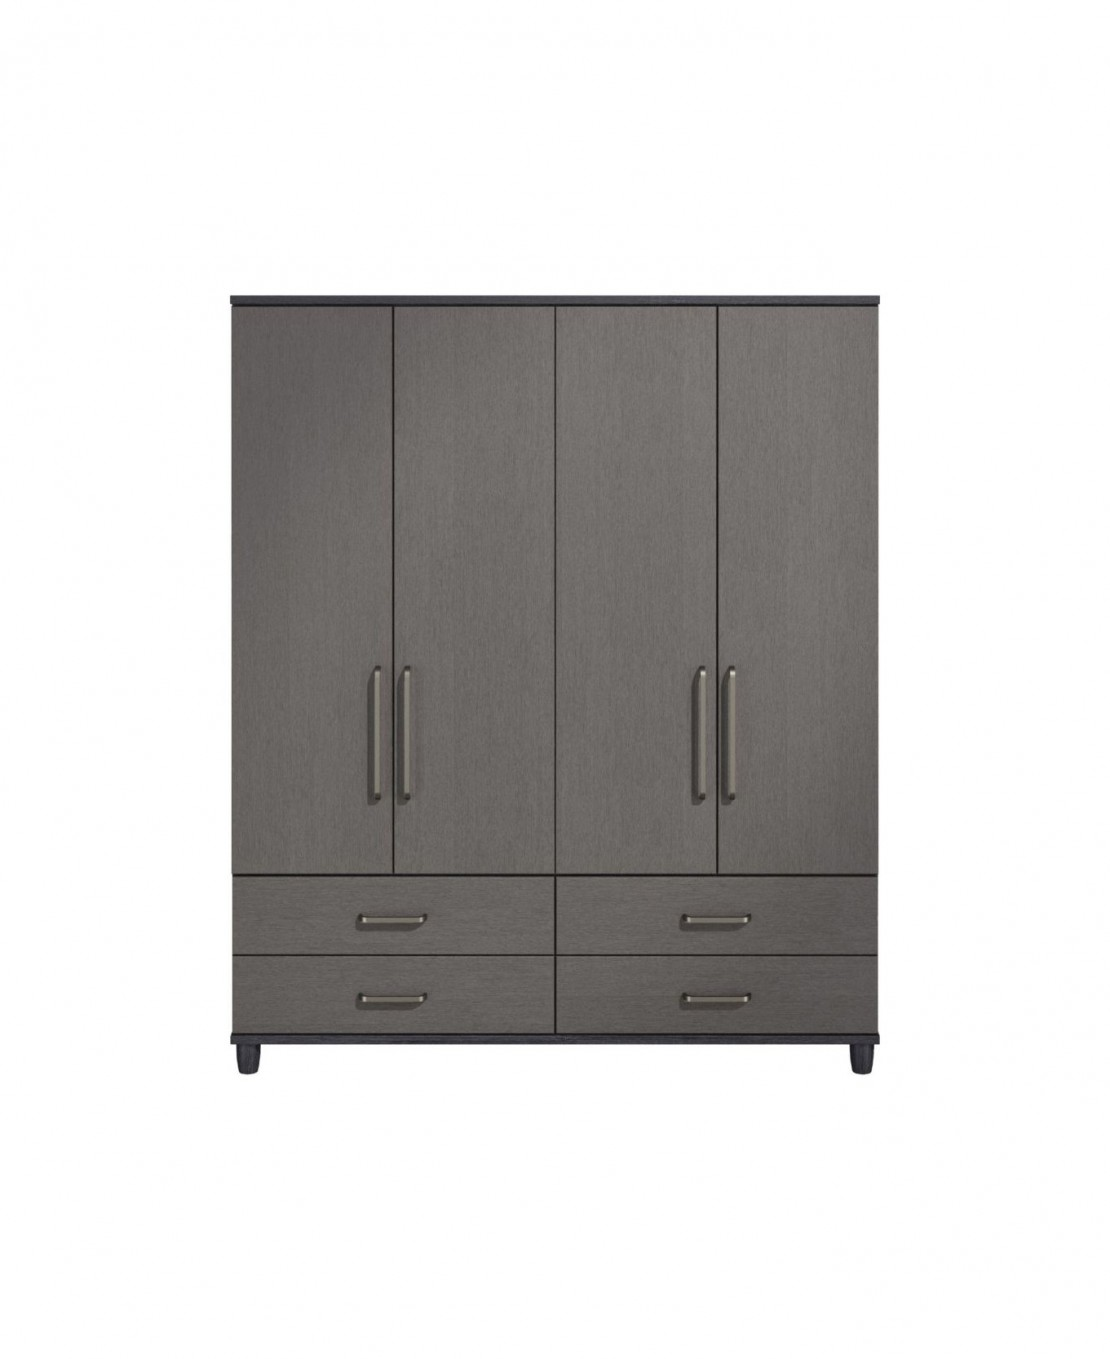 /_images/product-photos/kt-furniture-deco-4-door-gents-robe-black-oak-carcase-with-a.jpg